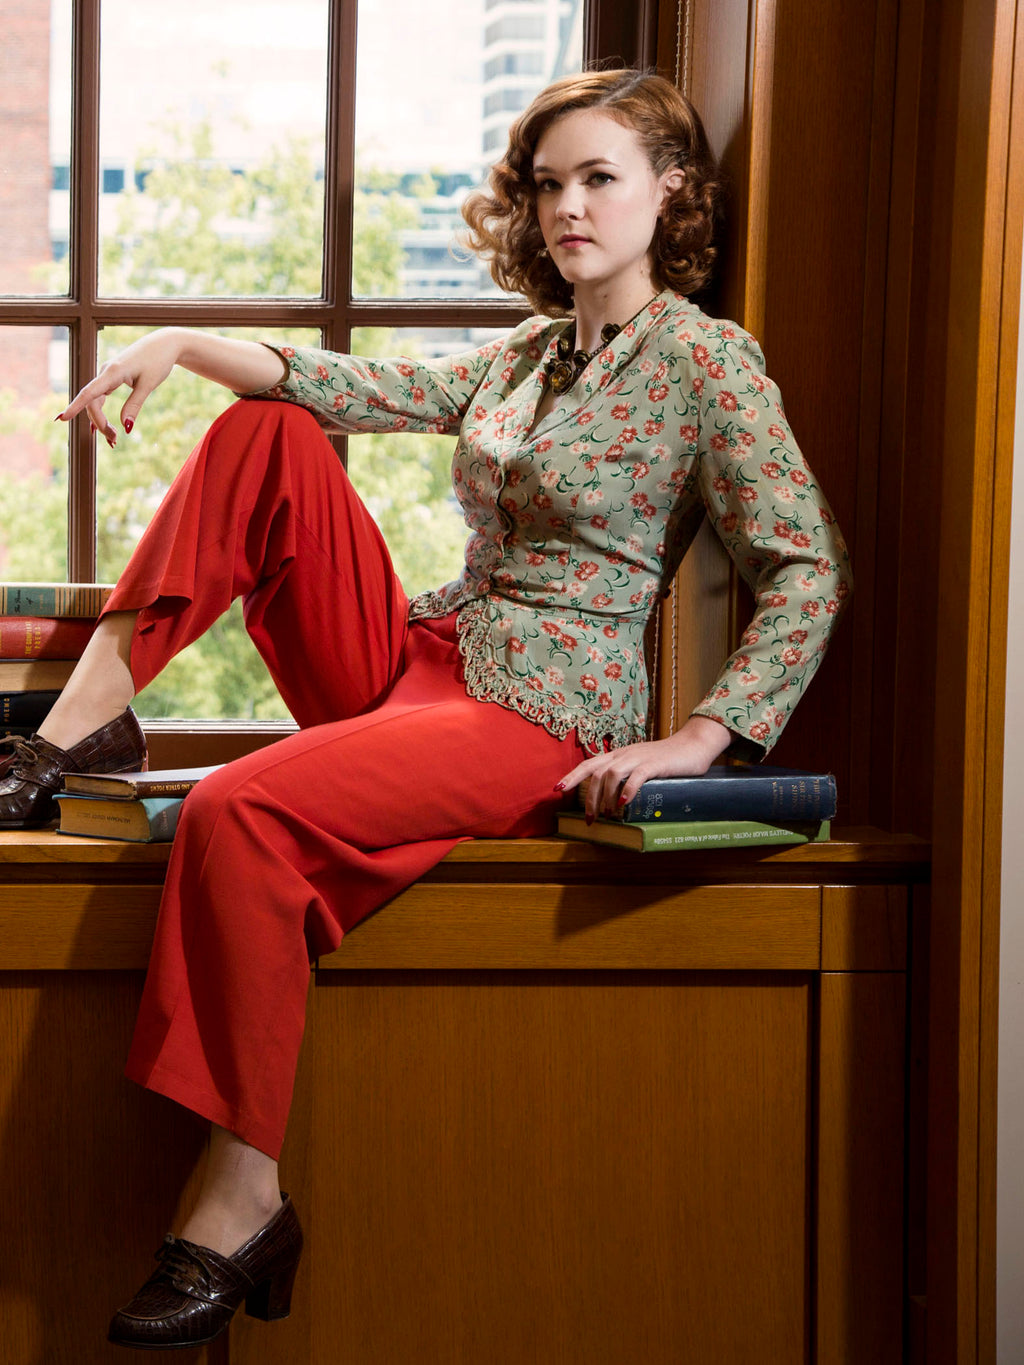 Vintage 1940s Pants - Killer 40s Paprika Red High Waist Slacks with Side Buttons